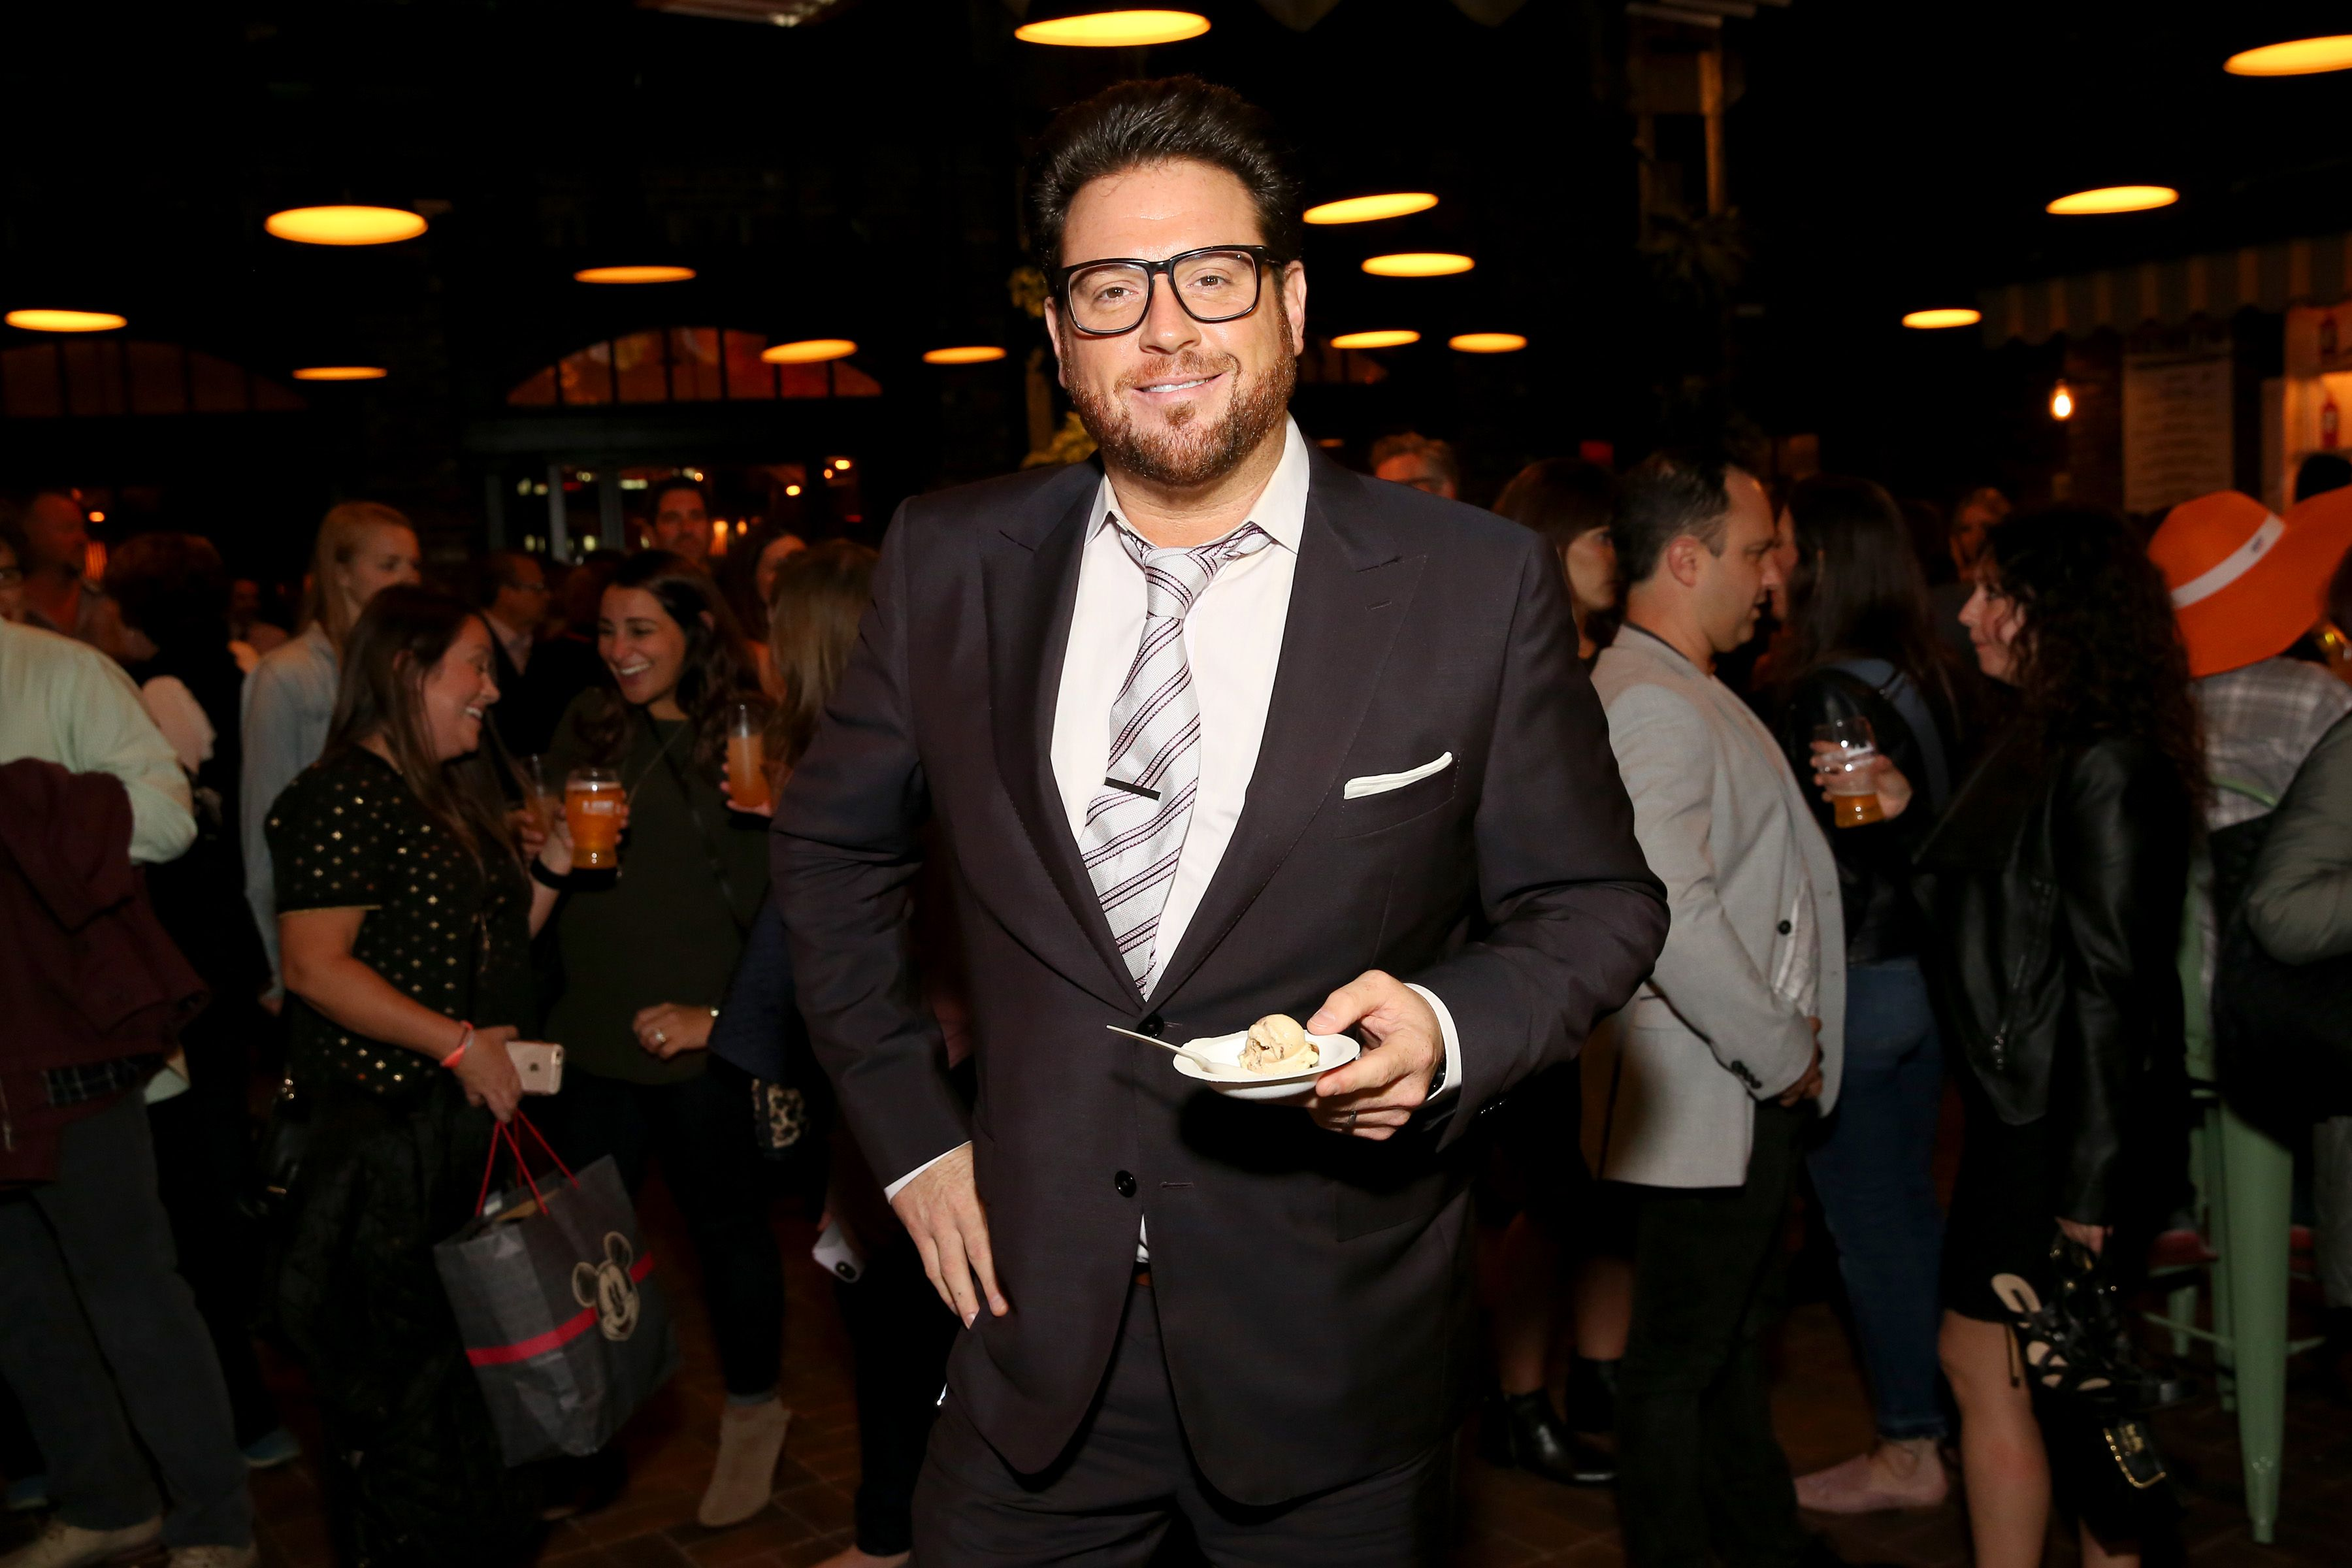 'Chopped' Judge Scott Conant Reveals the Secret Behind His 30-Pound Weight Loss